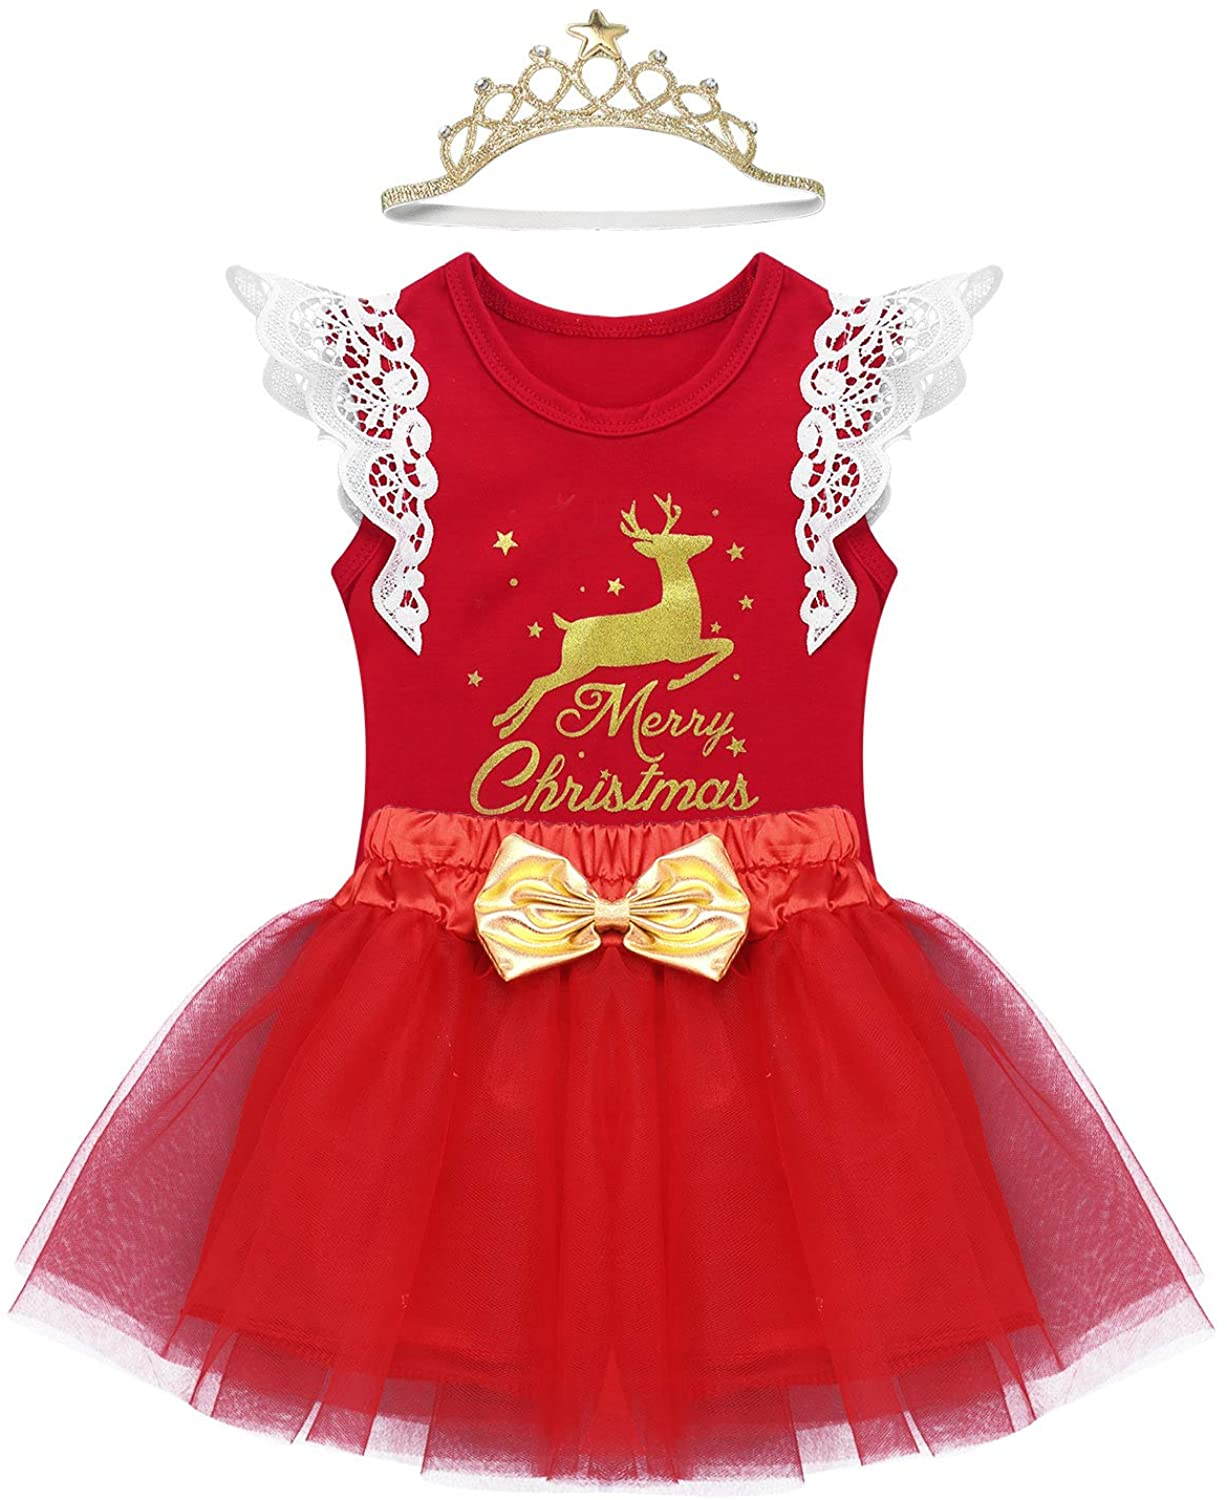 Freebily Baby Girls Christmas Outfits Clothes Newborn Toddlers 1st Xmas Deer Merry Christmas Romper with Tutu Skirt Set